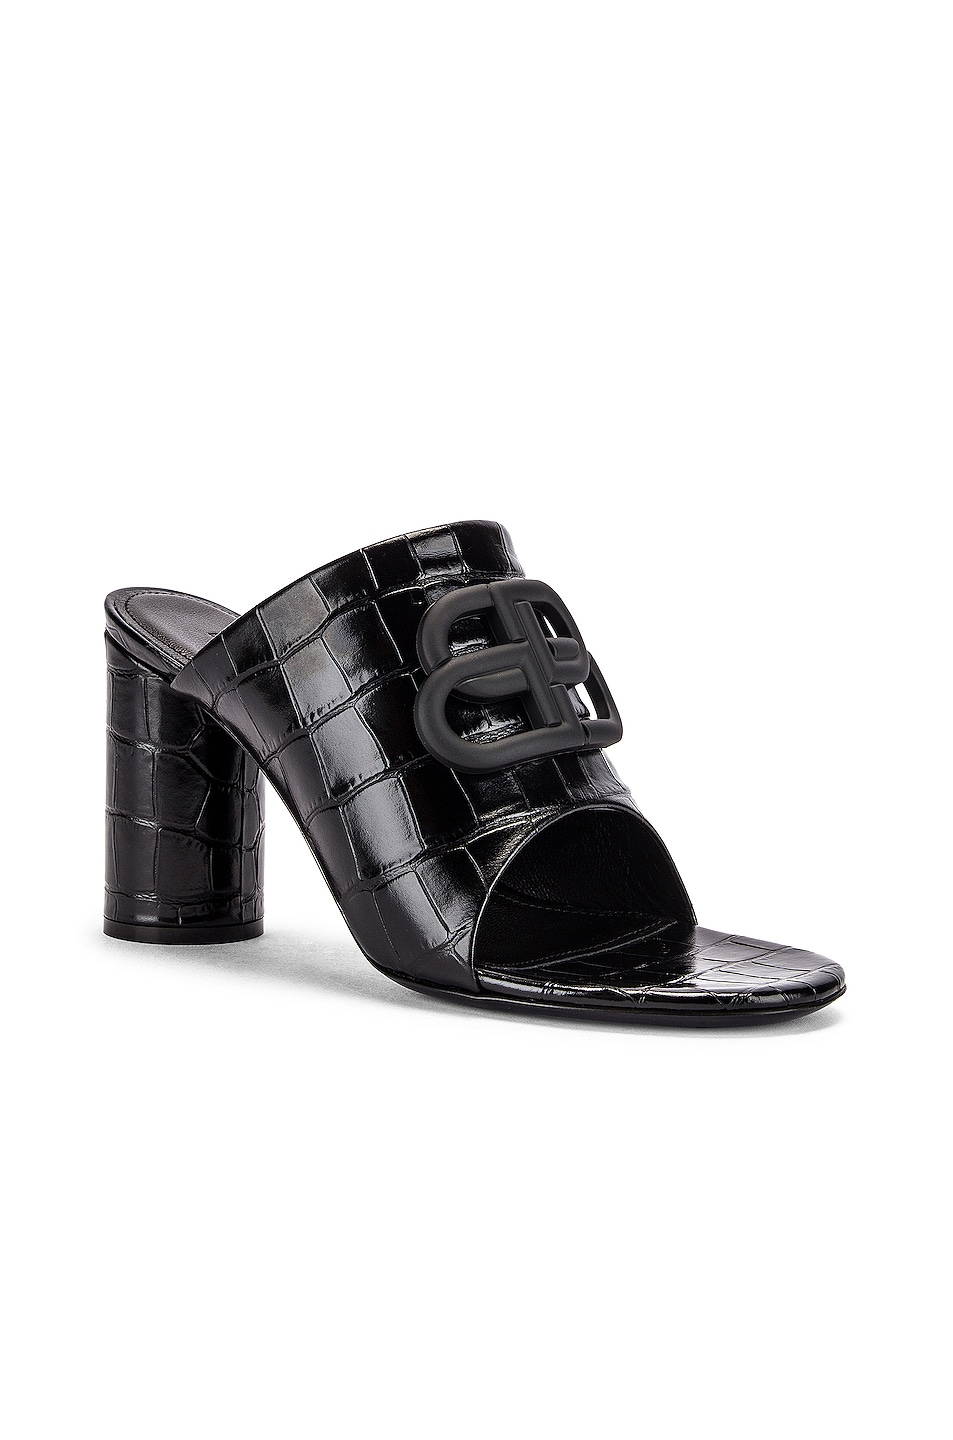 Image 3 of Balenciaga Croc Oval BB Sandals in Black & Black